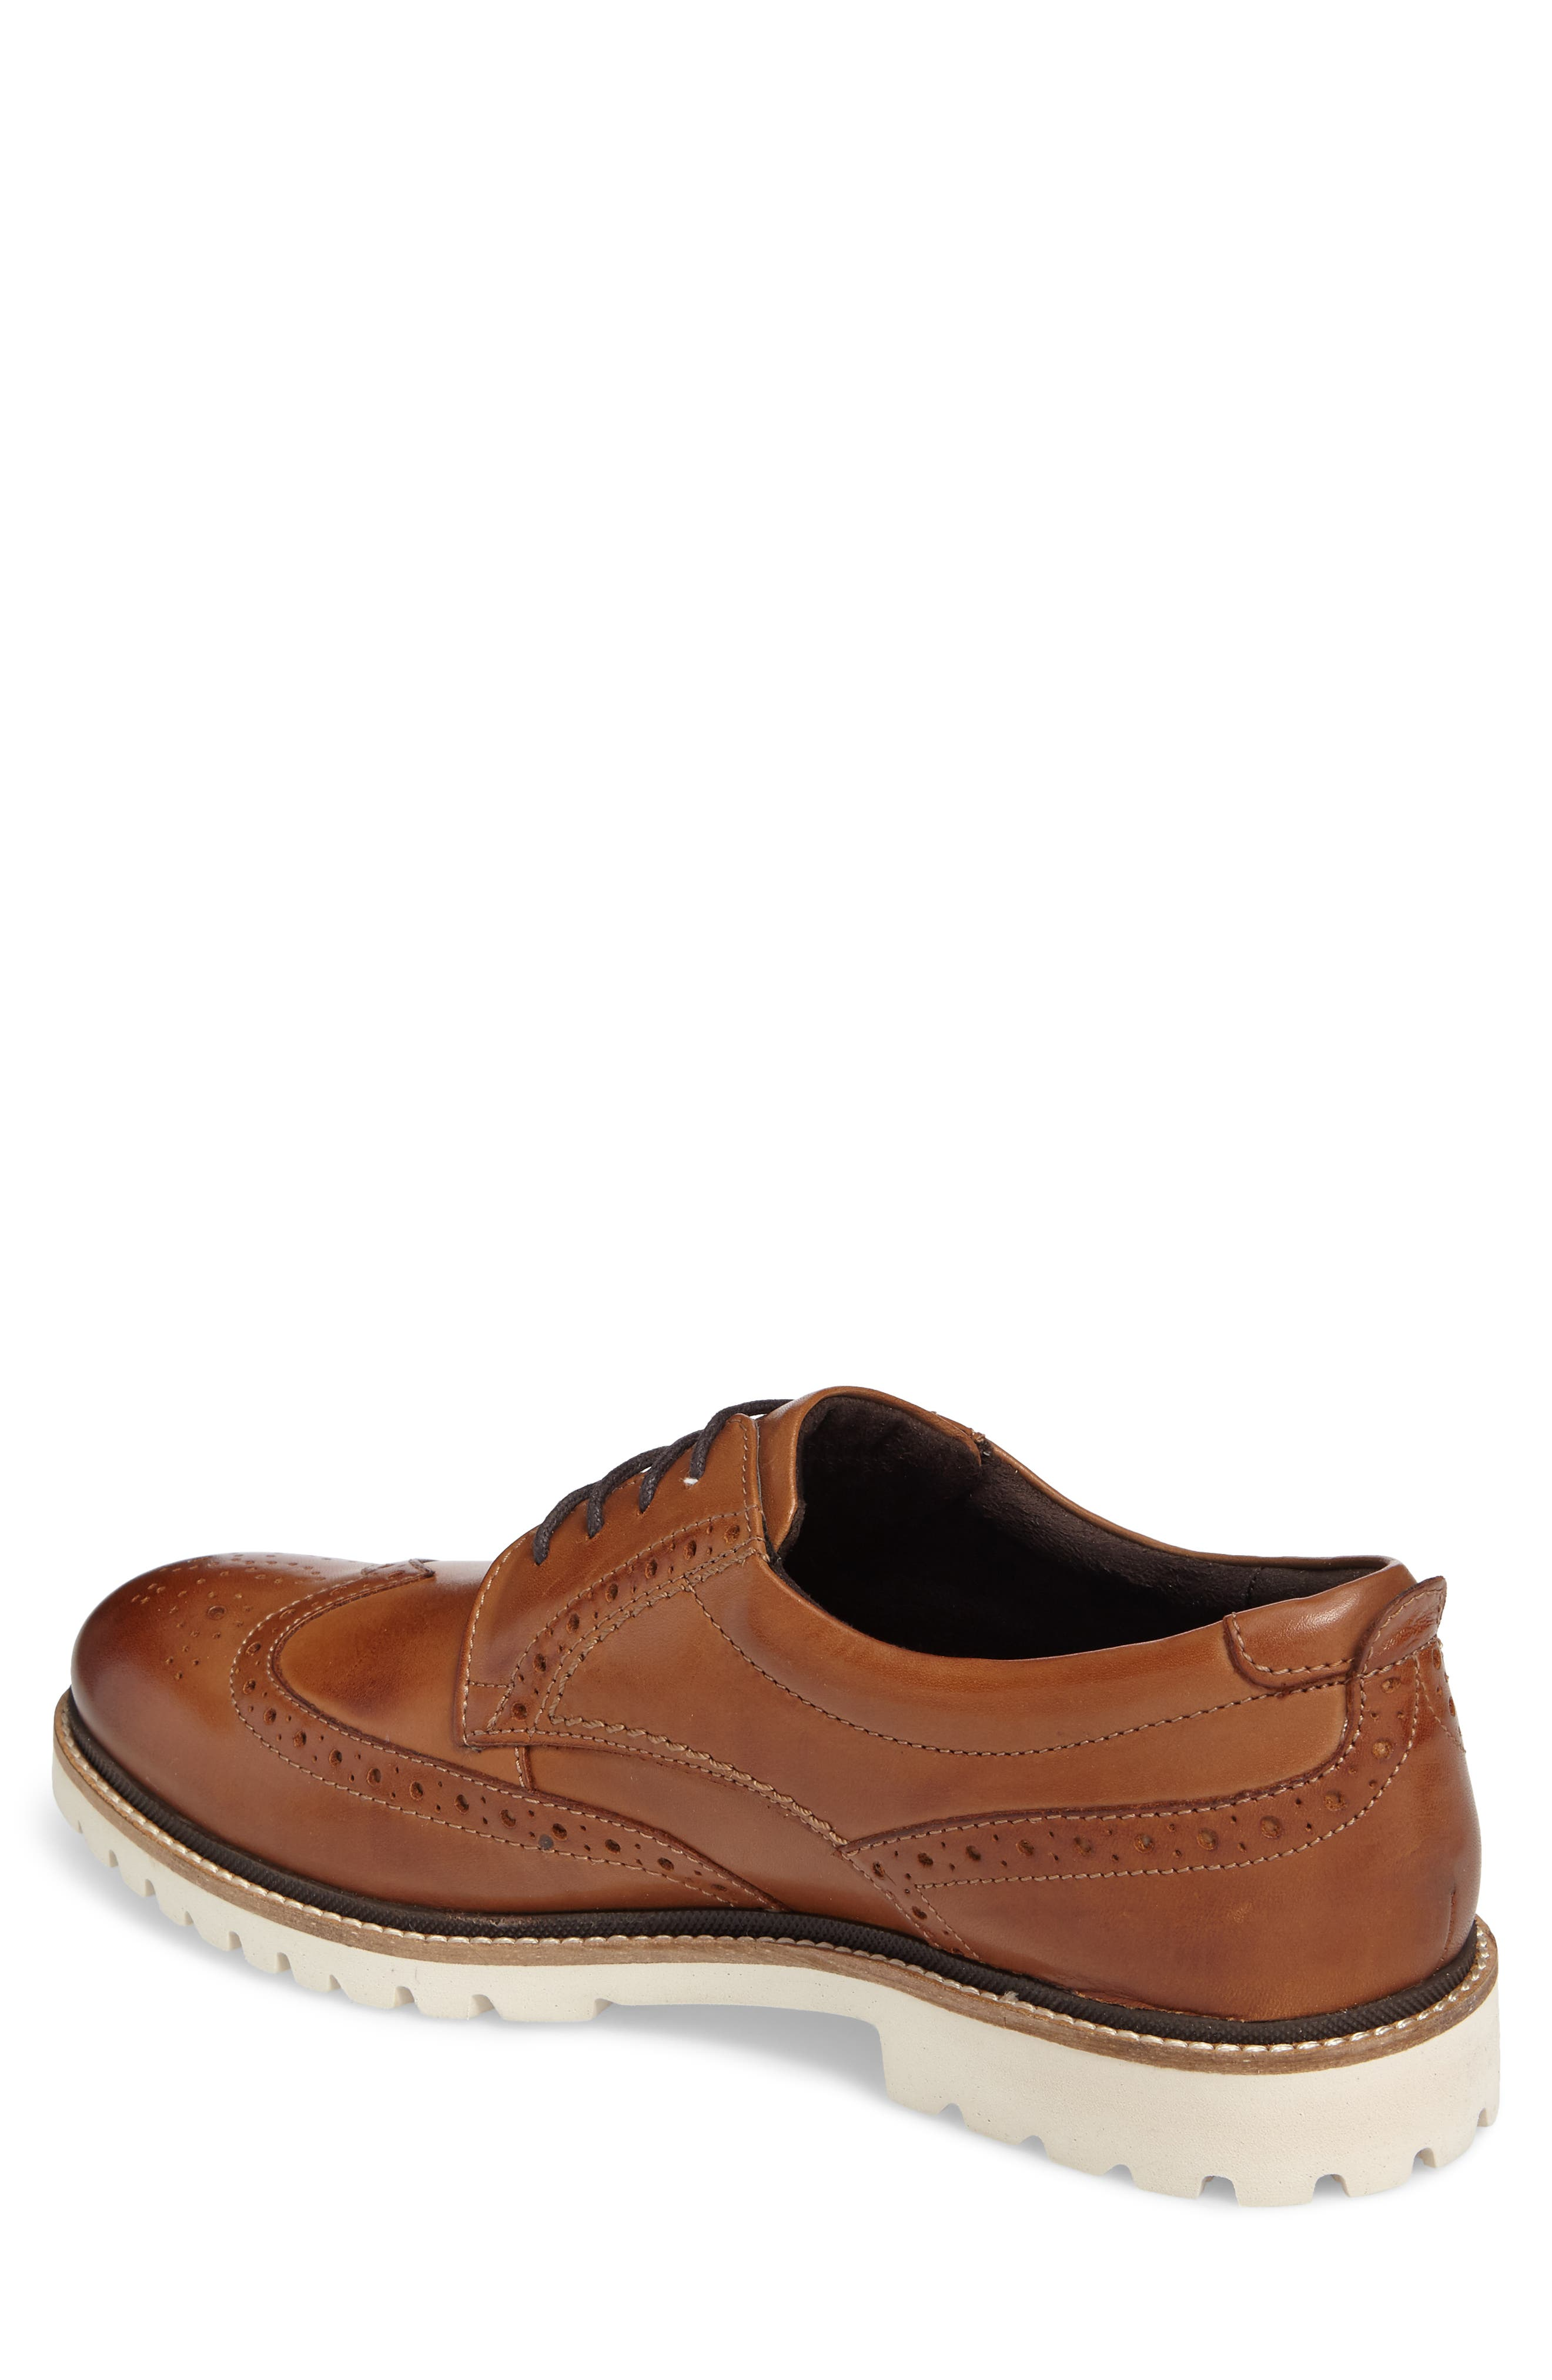 Marshall Wingtip,                             Alternate thumbnail 2, color,                             Cognac Leather